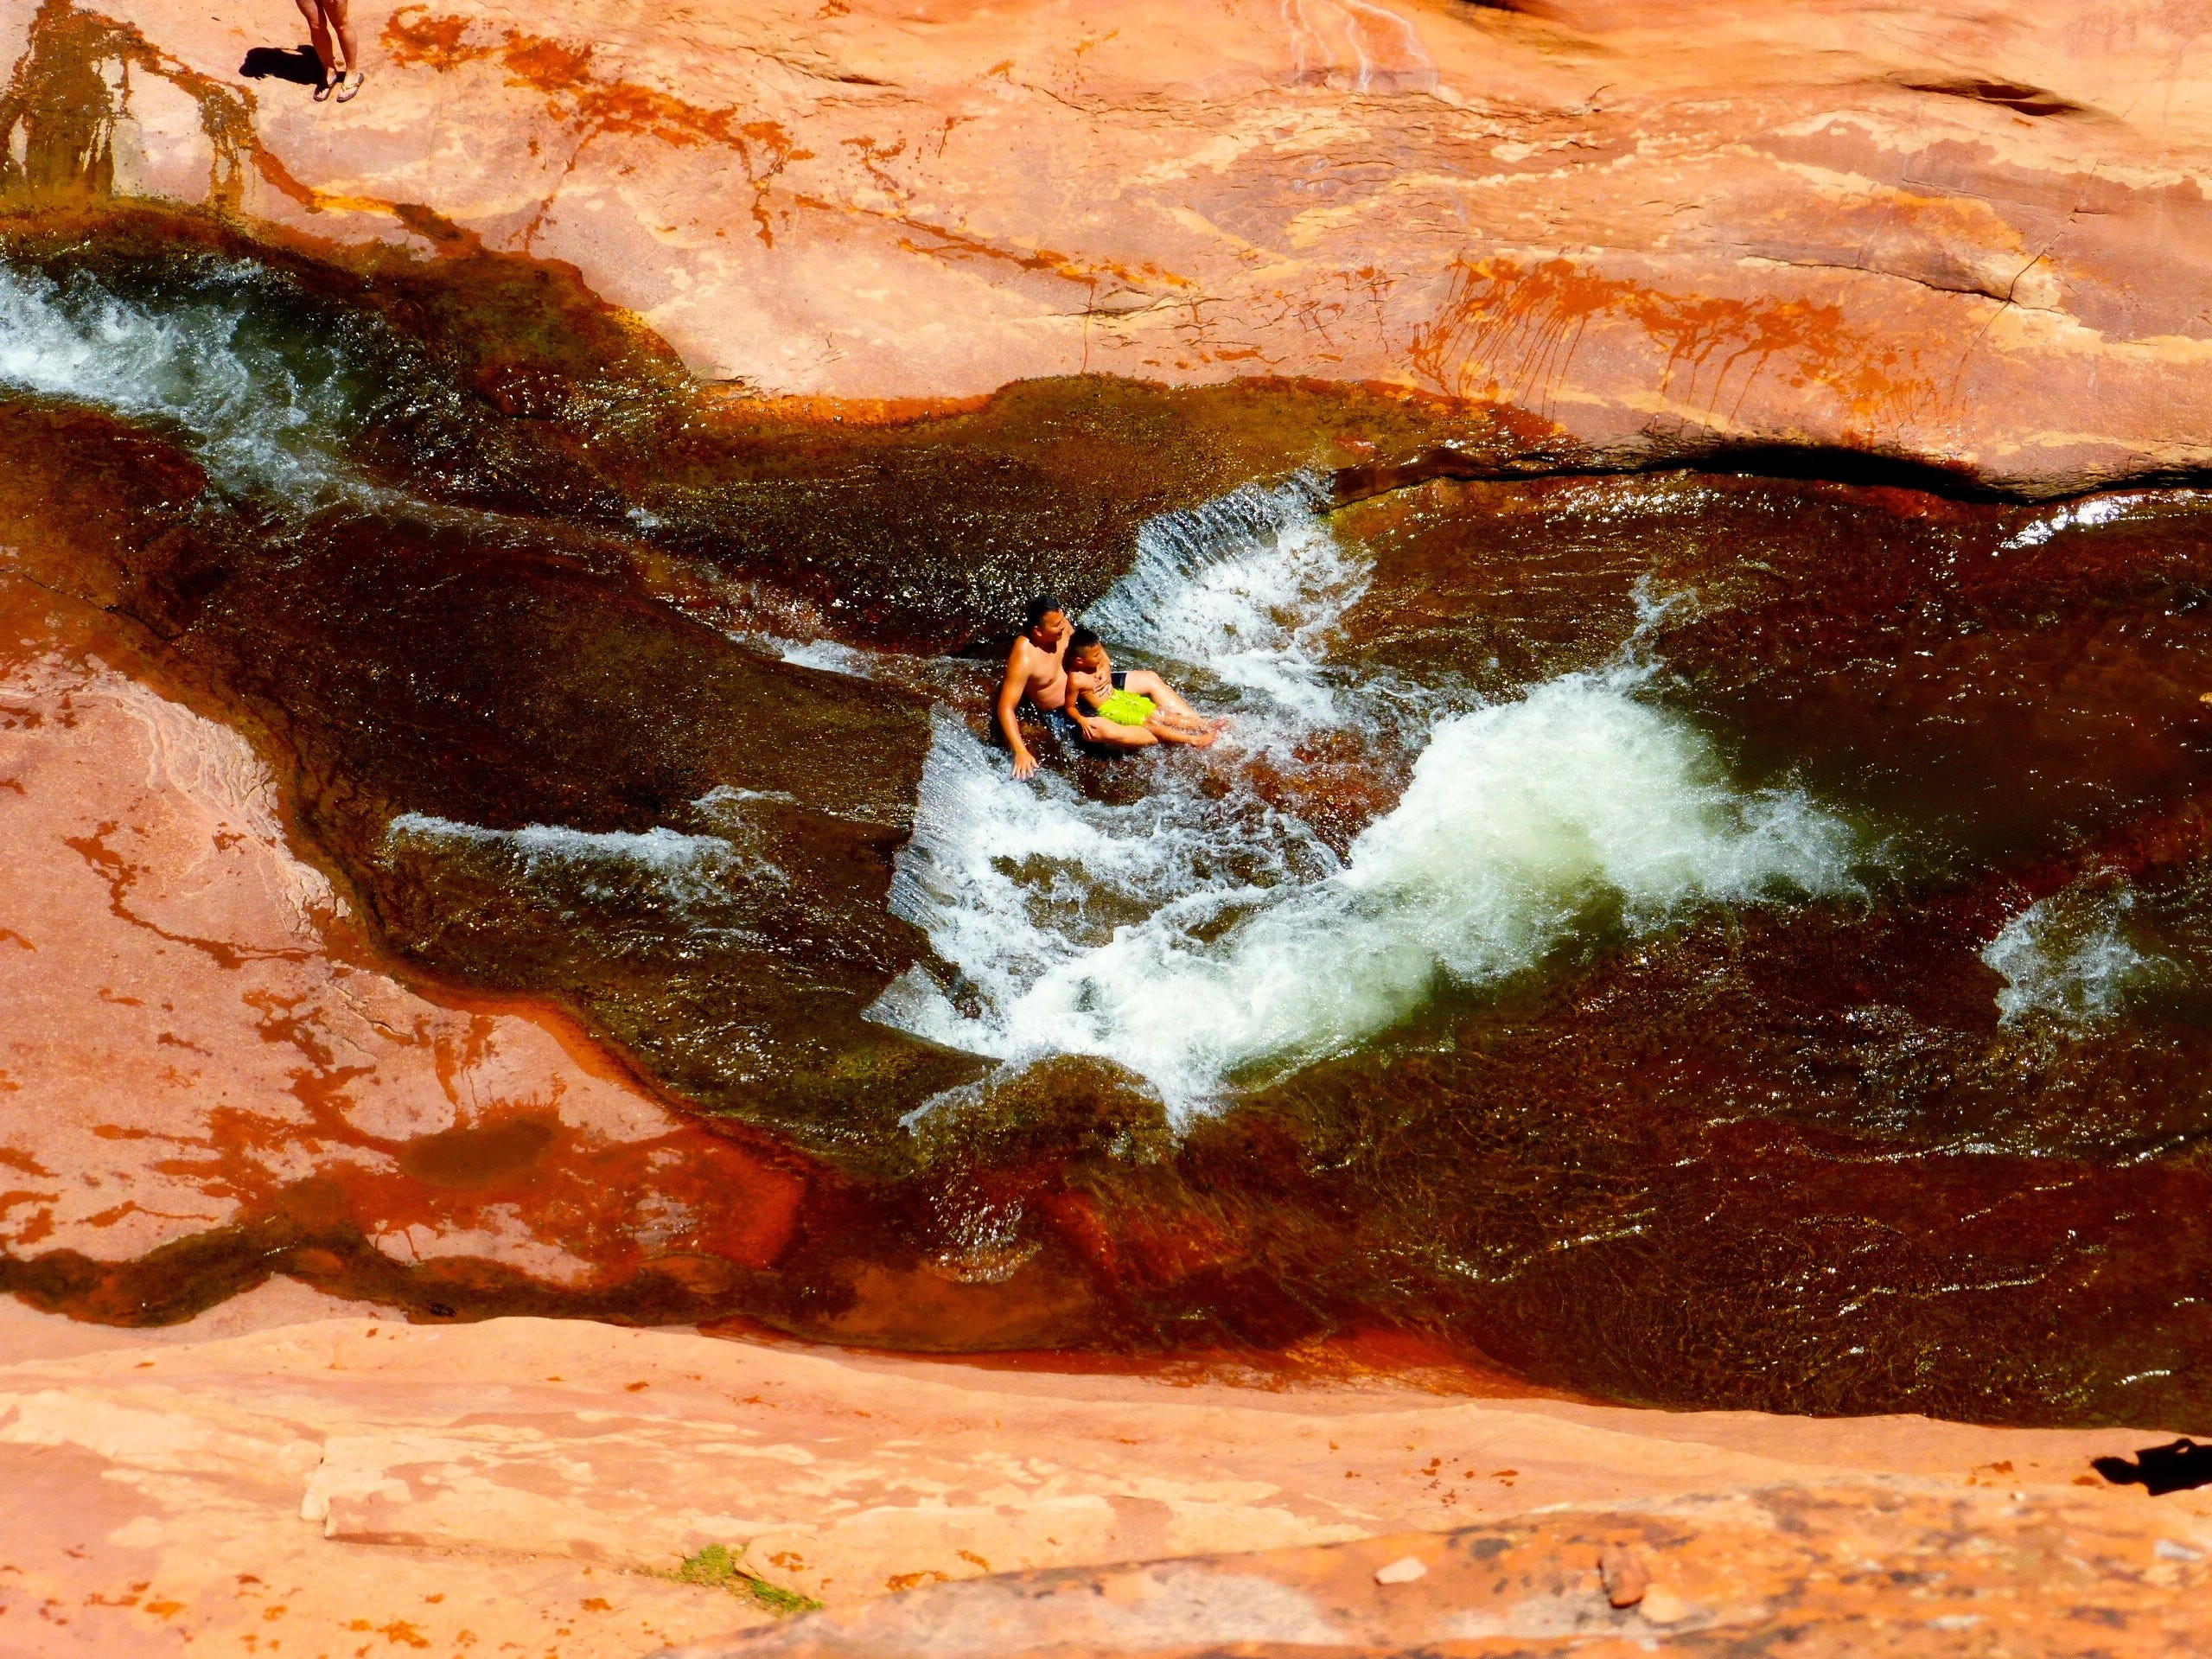 The stony banks of Oak Creek form a natural water slide at Slide Rock State Park in Sedona.